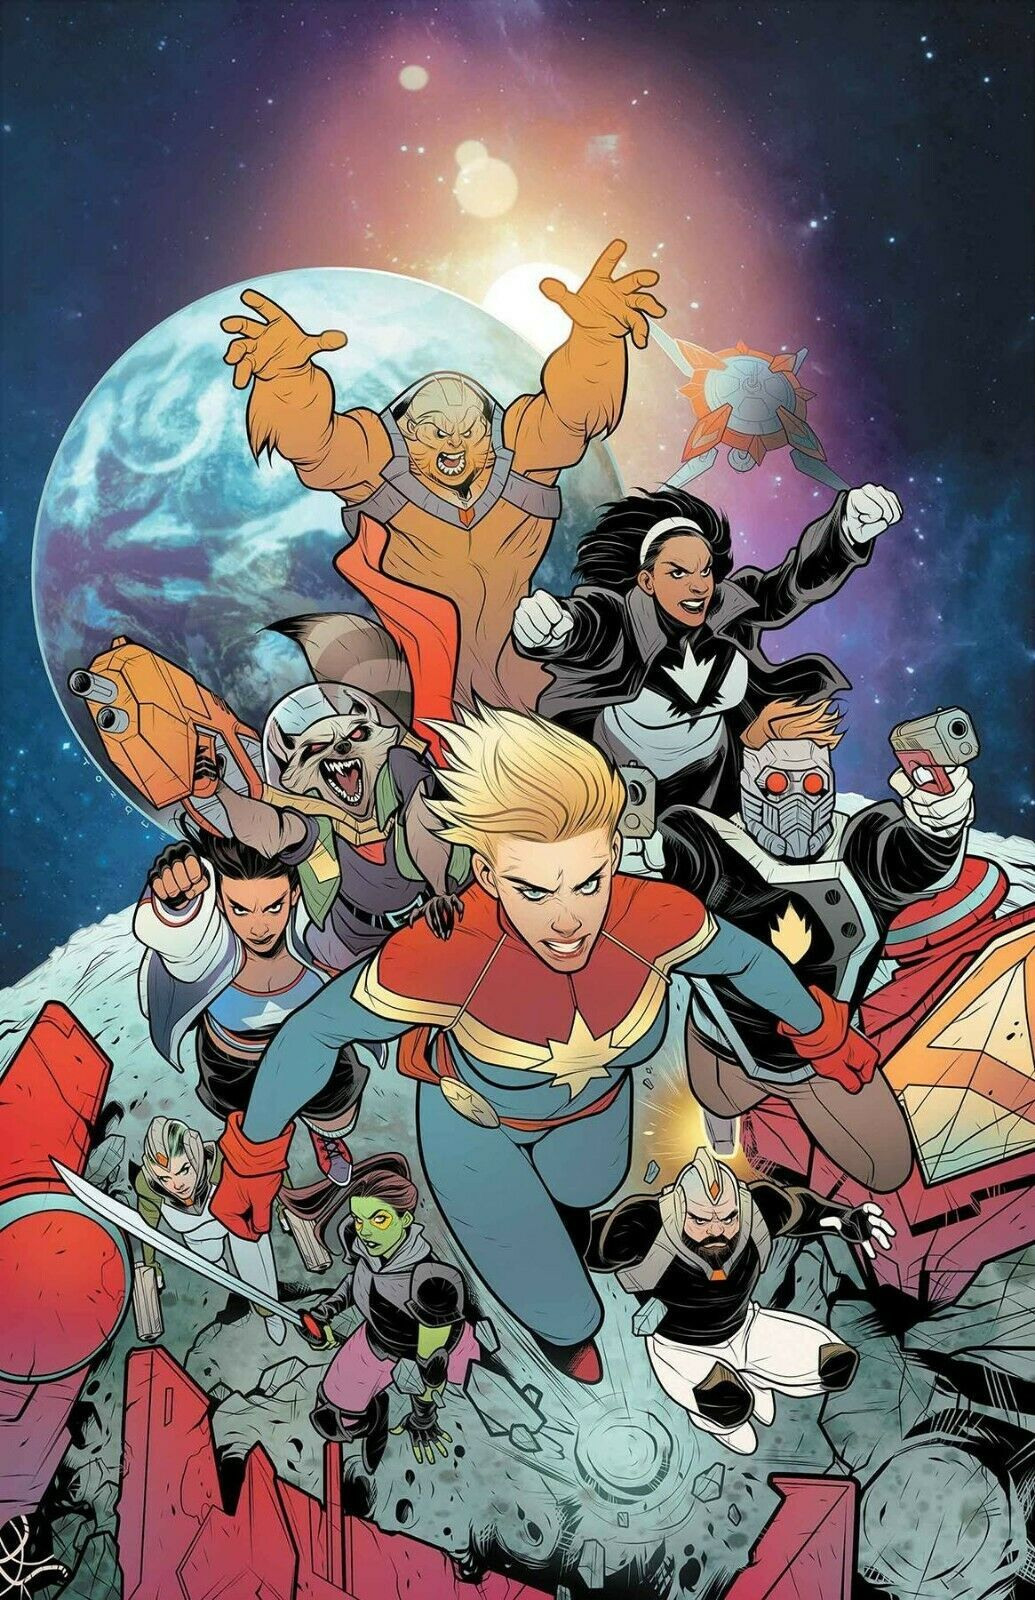 Mighty Captain Marvel (2016) Marvel #7 Stohl Bandini New Comic Book Comics